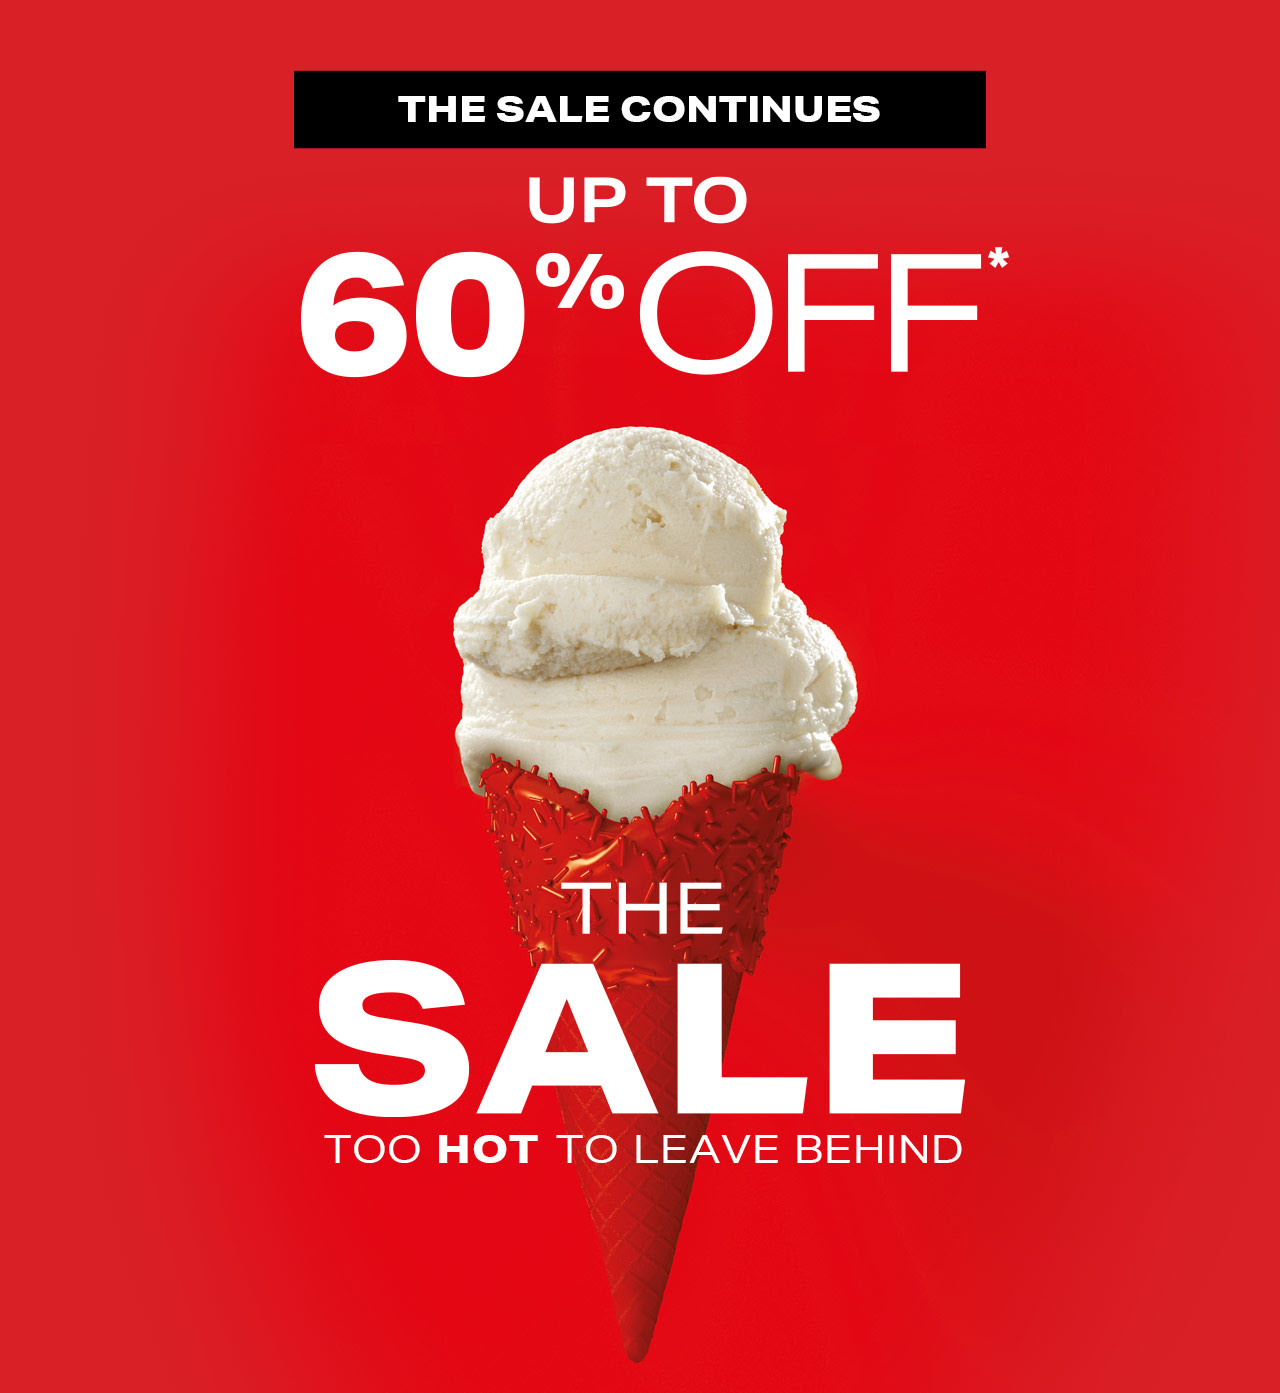 Brown Thomas - The Sale continues with up to 60% off